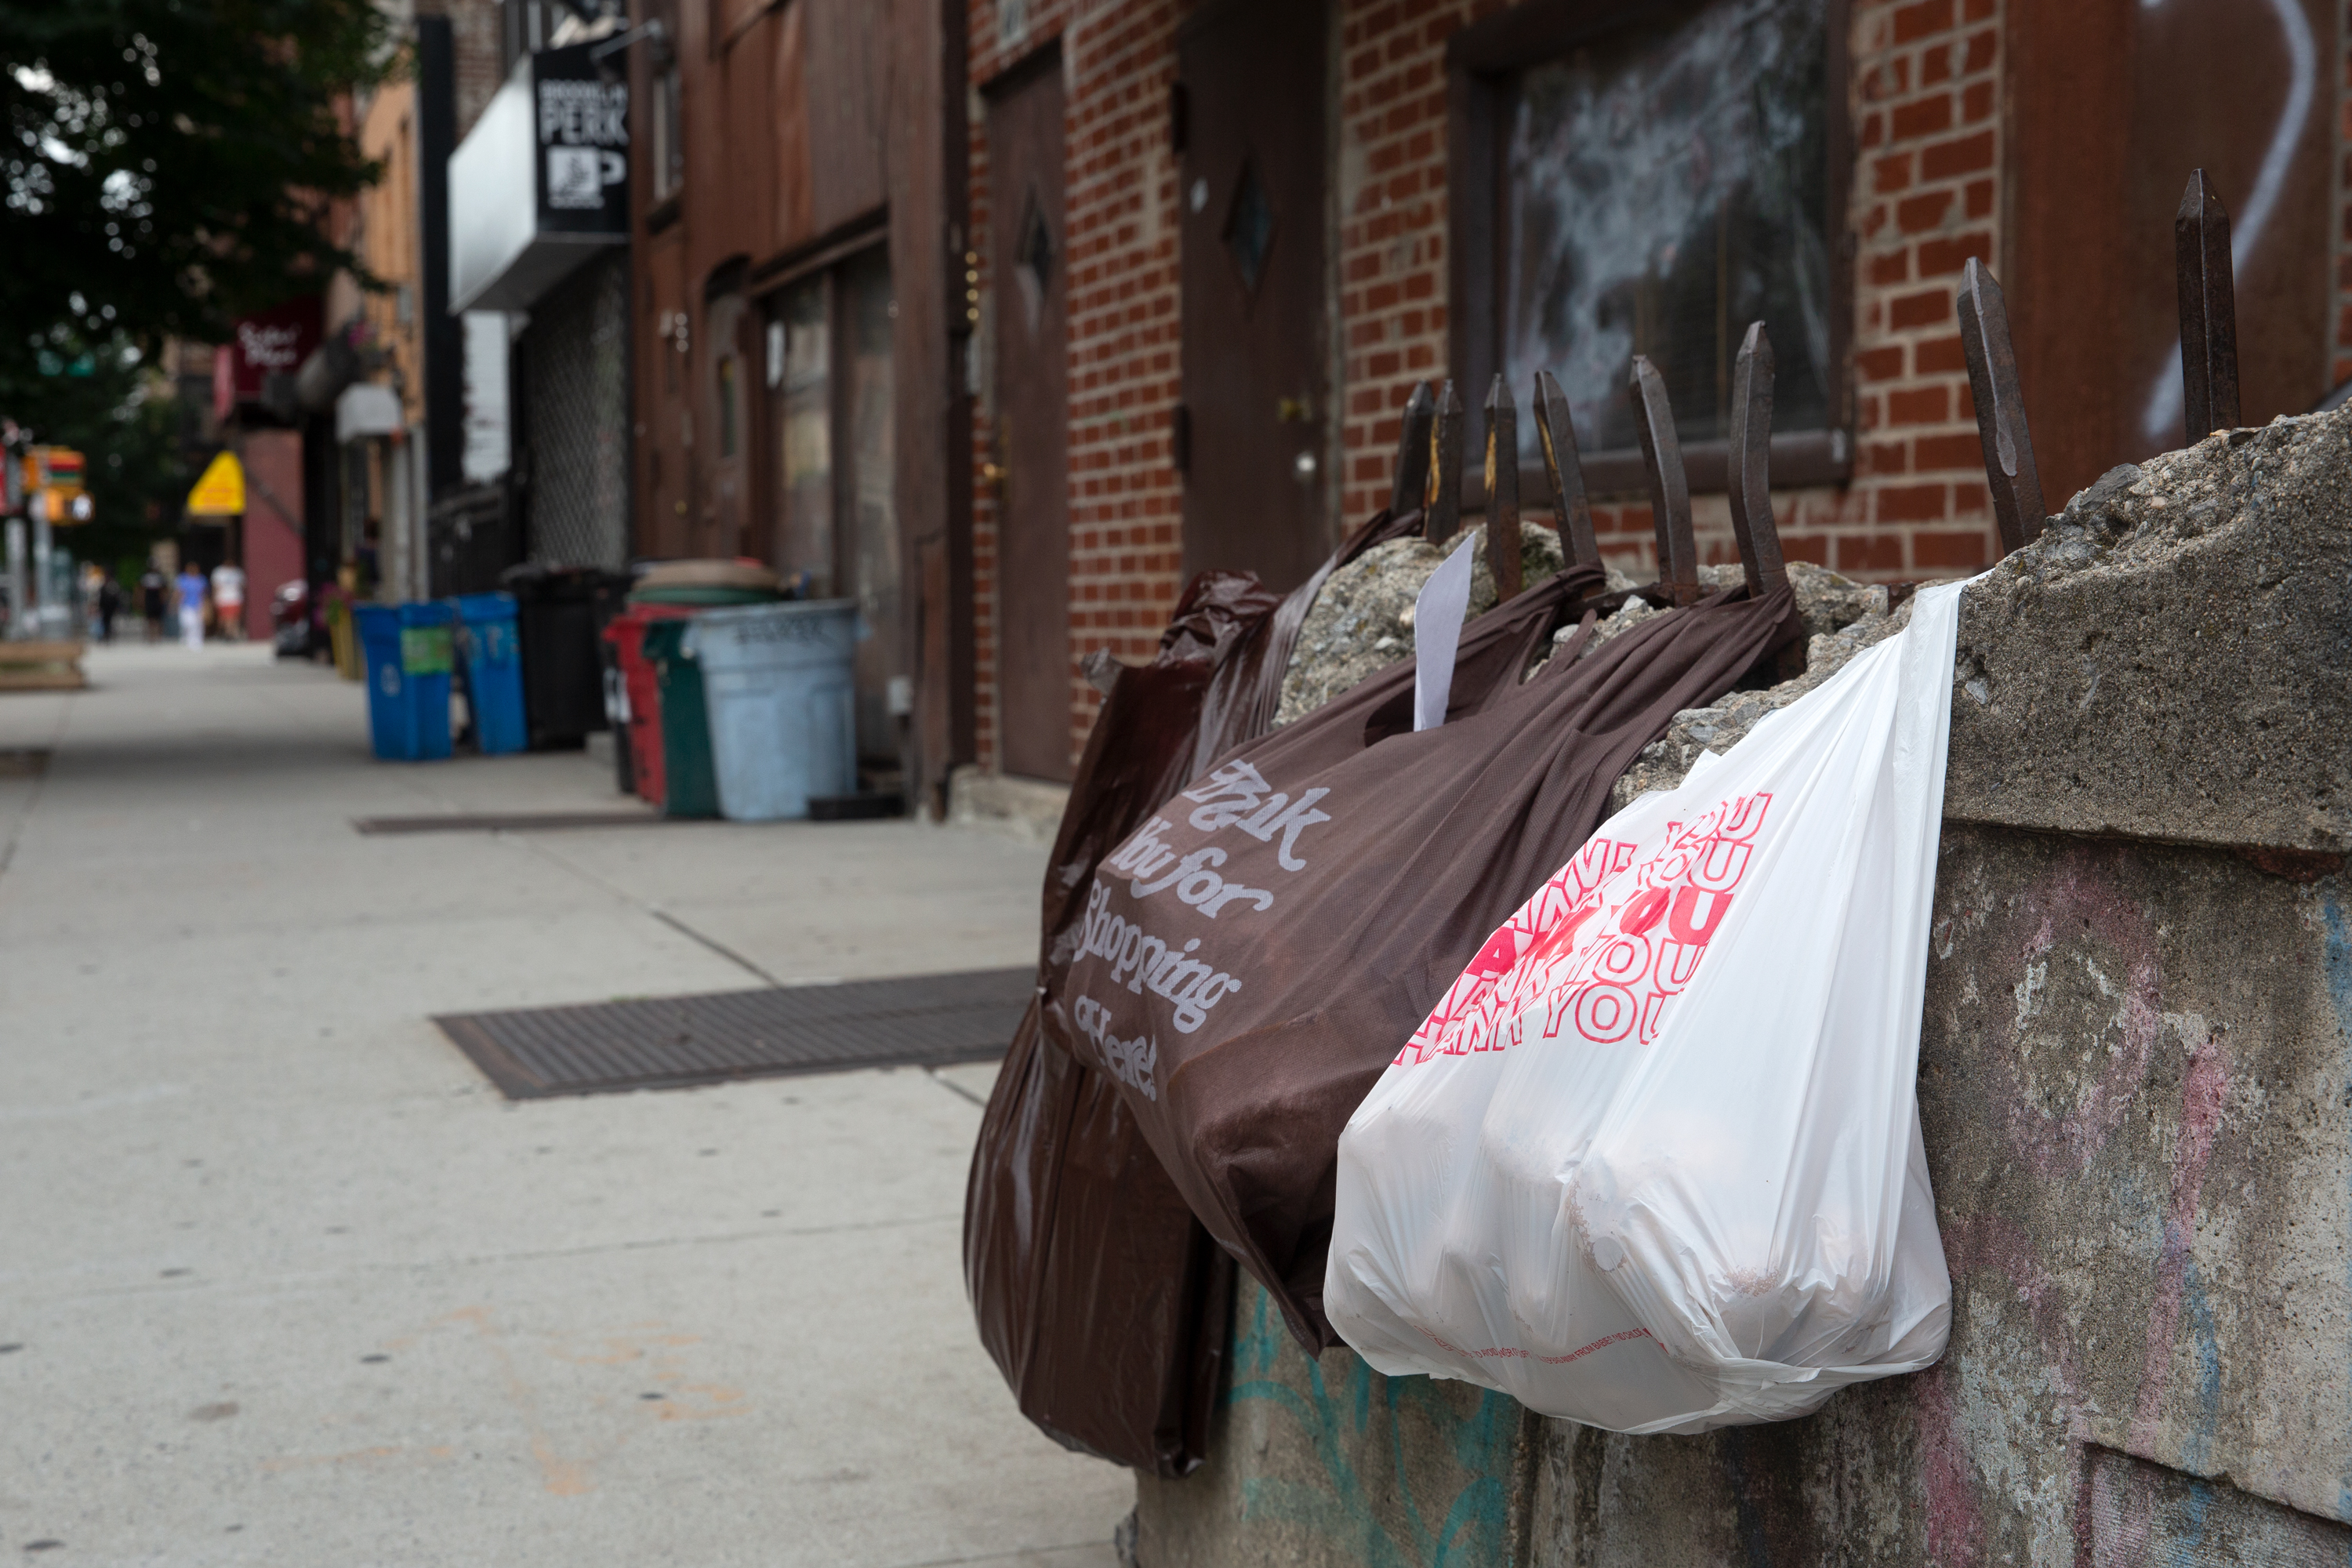 Plastic bags hang out with a reusable bag in Bed-Stuy, Brooklyn, July 22, 2021.